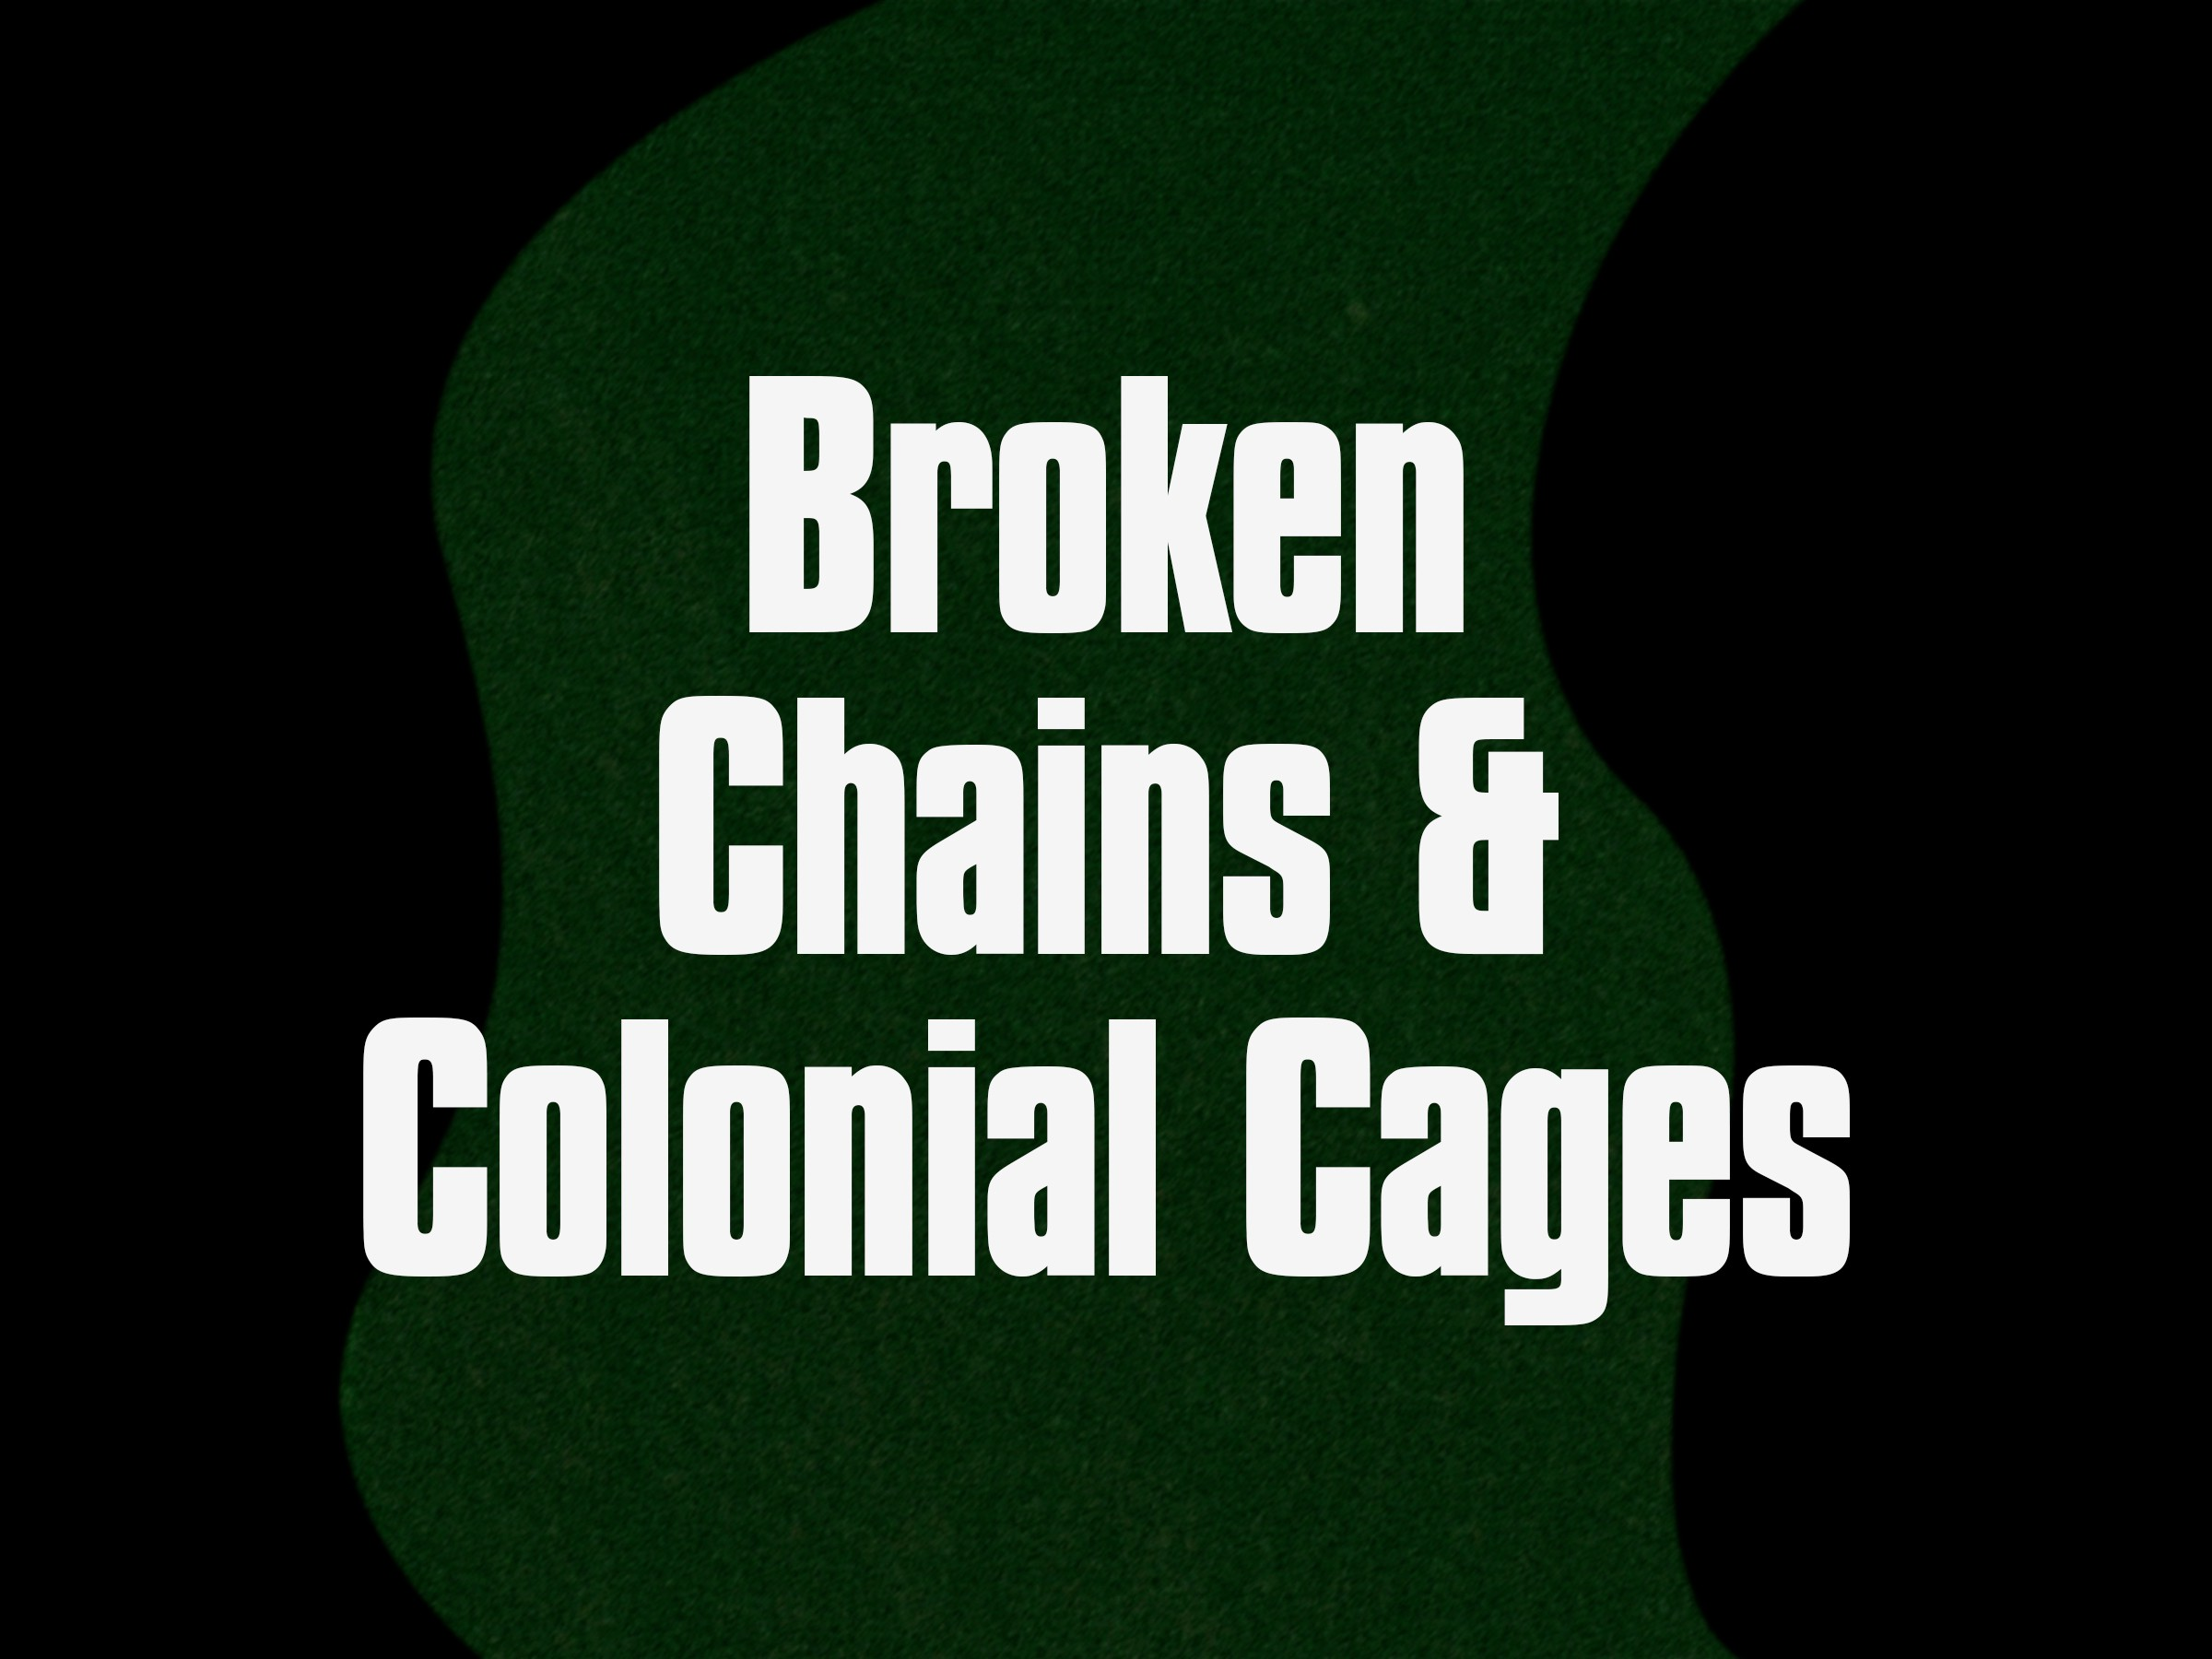 Broken Chains & Colonial Cages